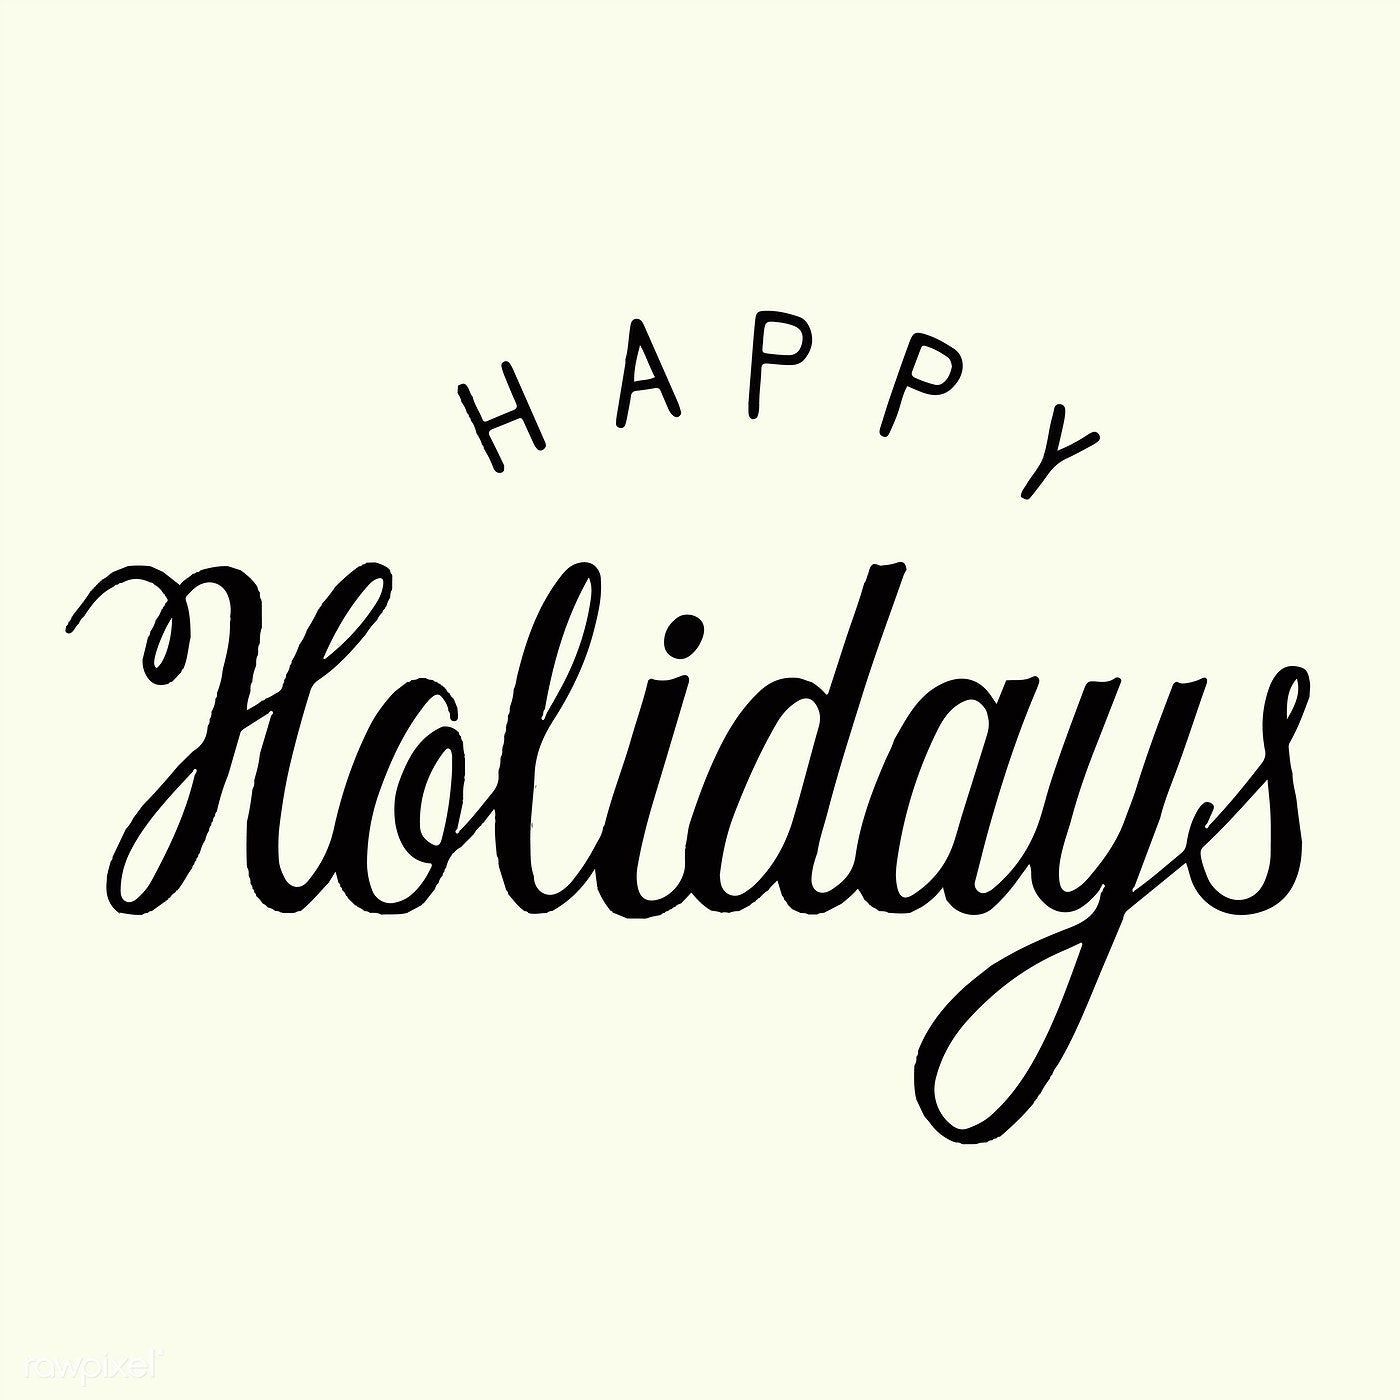 Handwritten Style Happy Holidays Typography Free Image By Rawpixel Com Happy Holidays Images Holiday Lettering Holiday Calligraphy